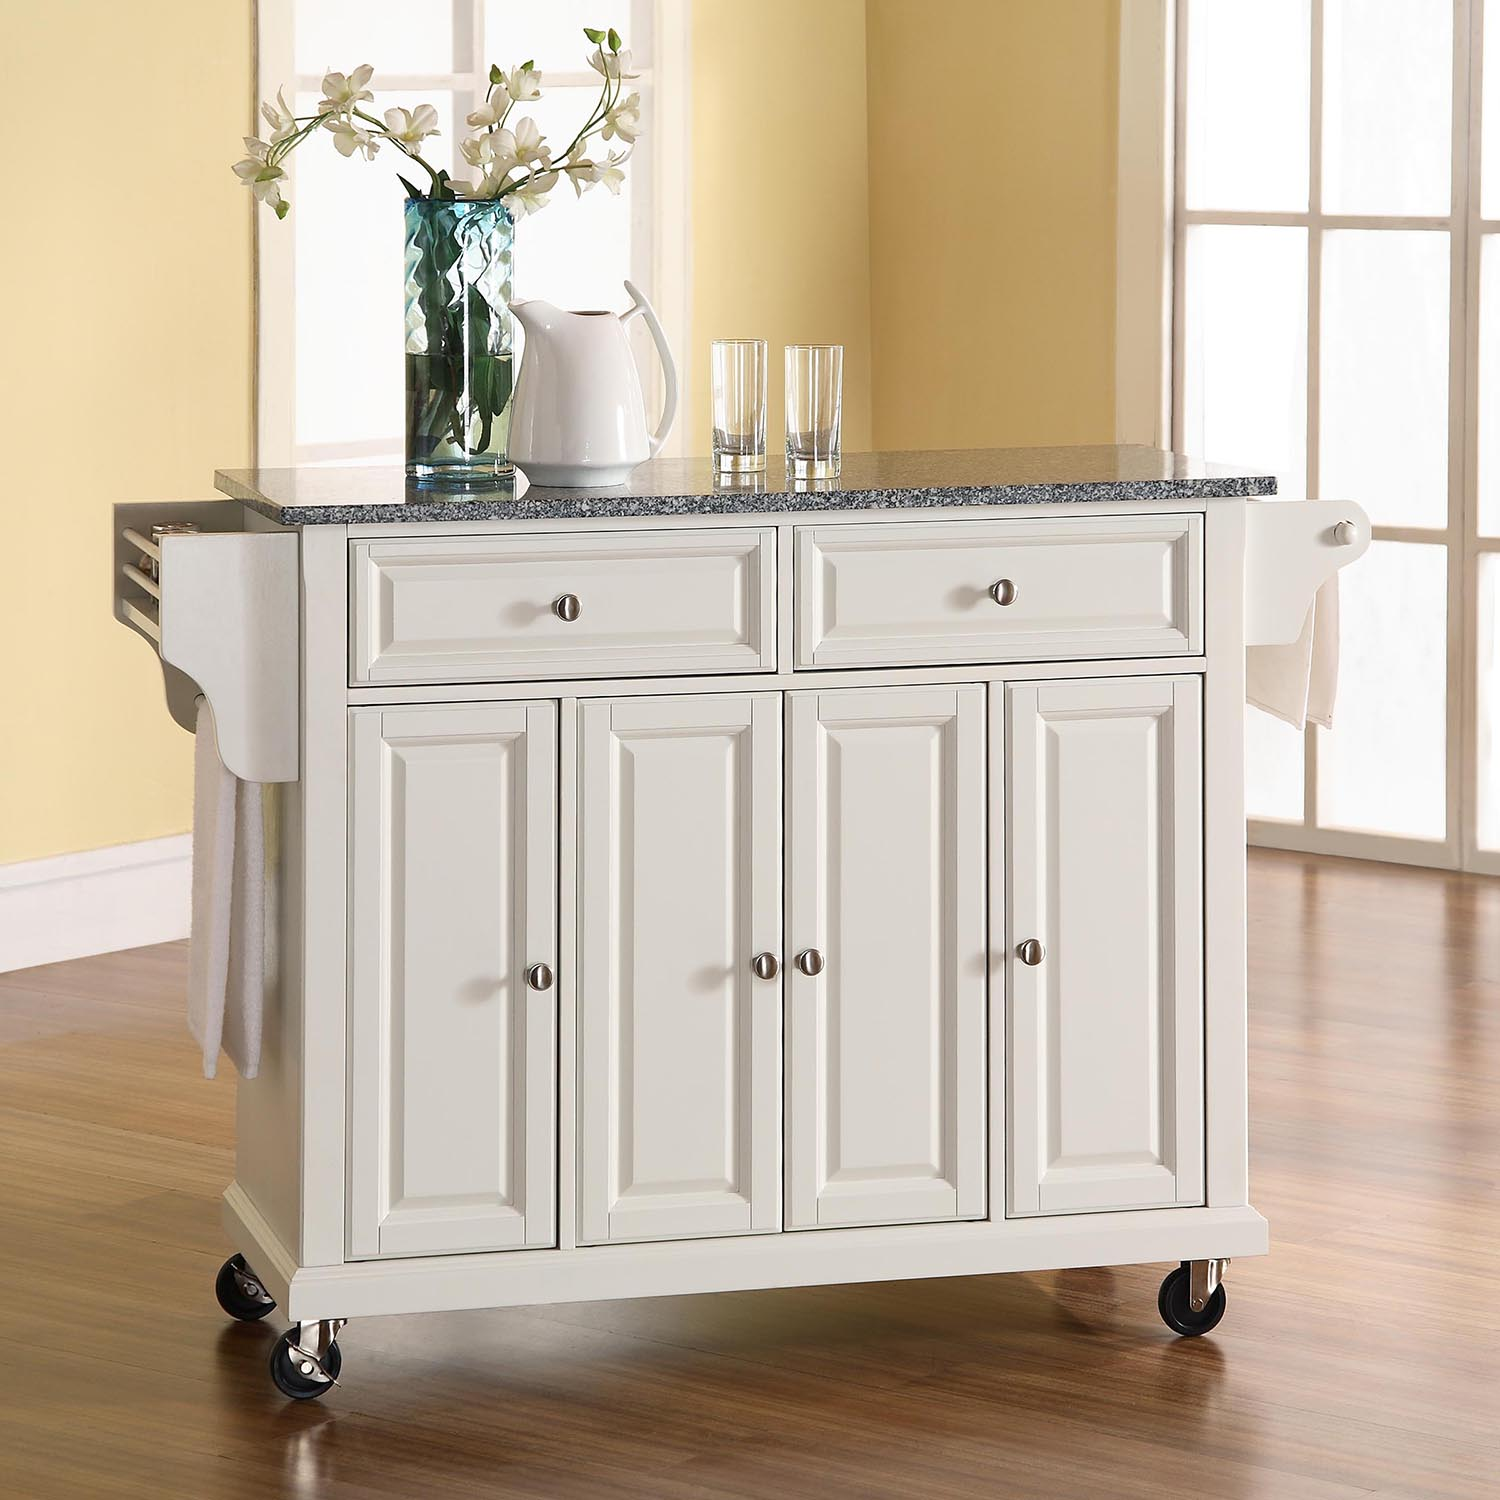 marble top kitchen cart booster seat solid granite island casters white